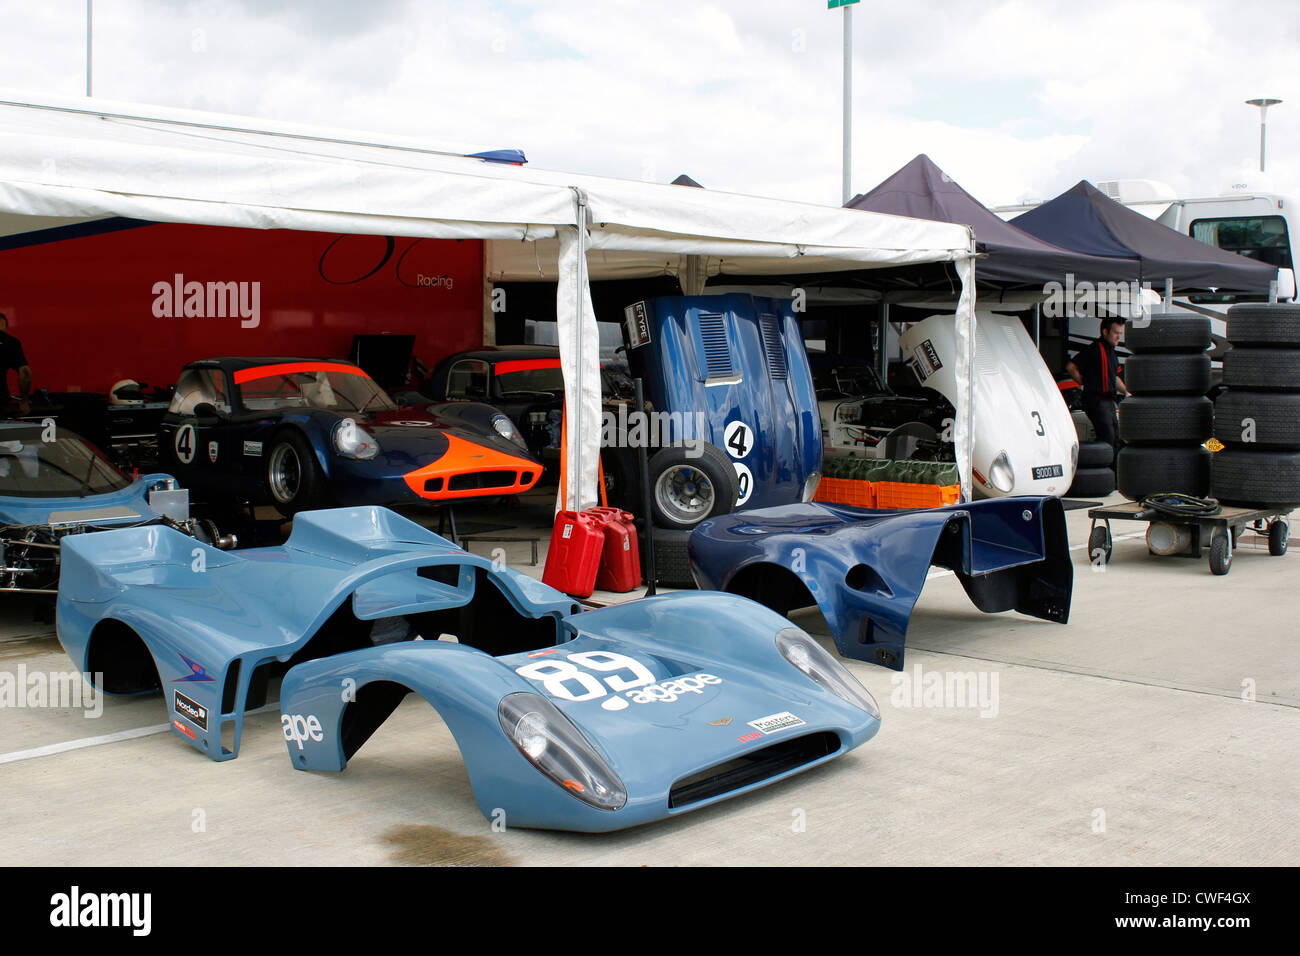 Silverstone Classic Car workshop - Stock Image